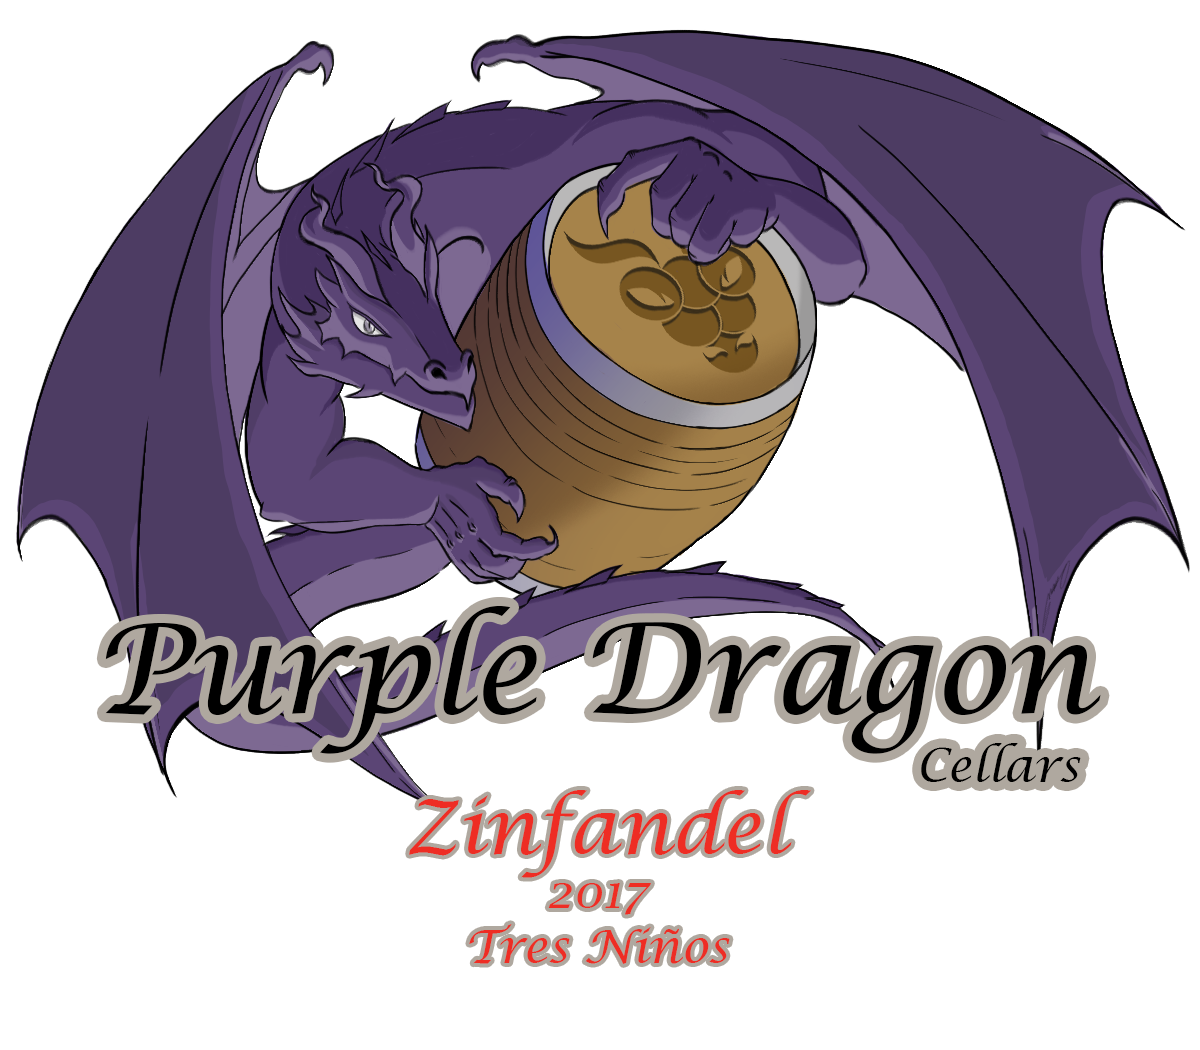 PDC_Label_Dragon_Zinf_2017.png